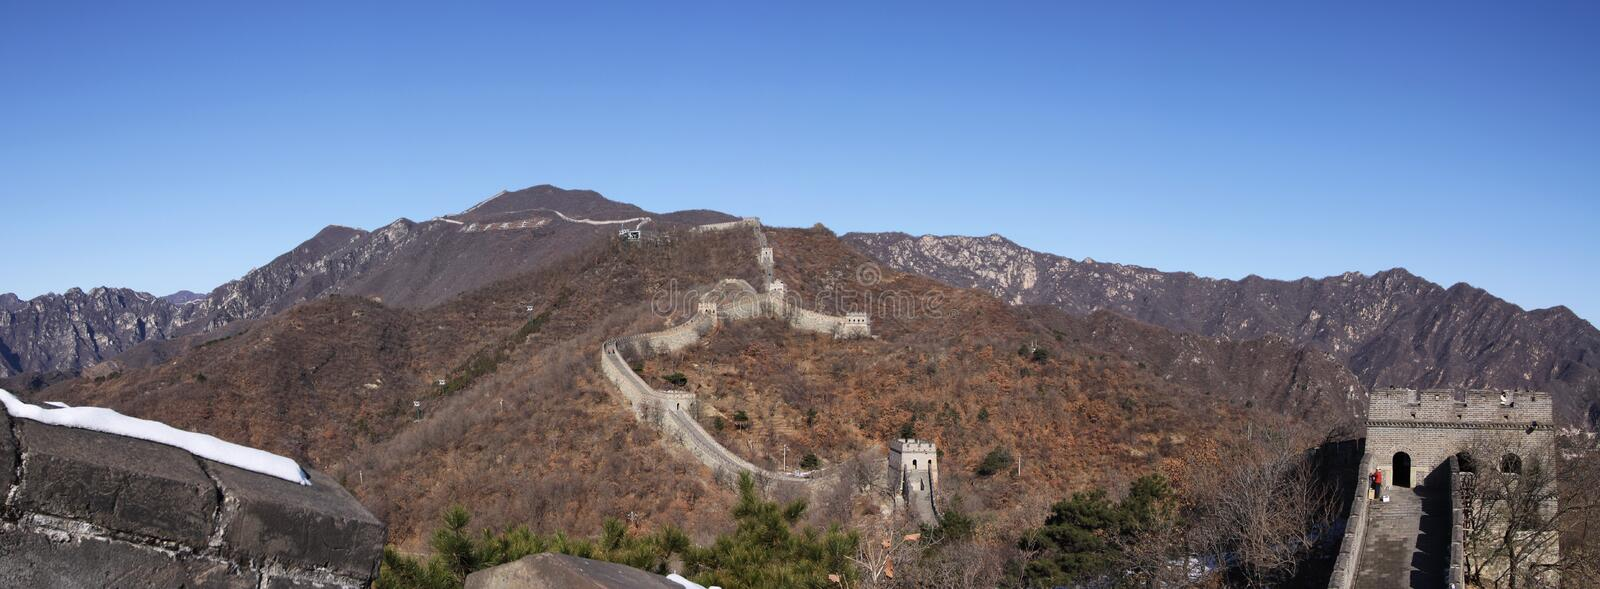 Download Great Wall Of China Mutianyu Beijing Stock Image - Image: 13345121